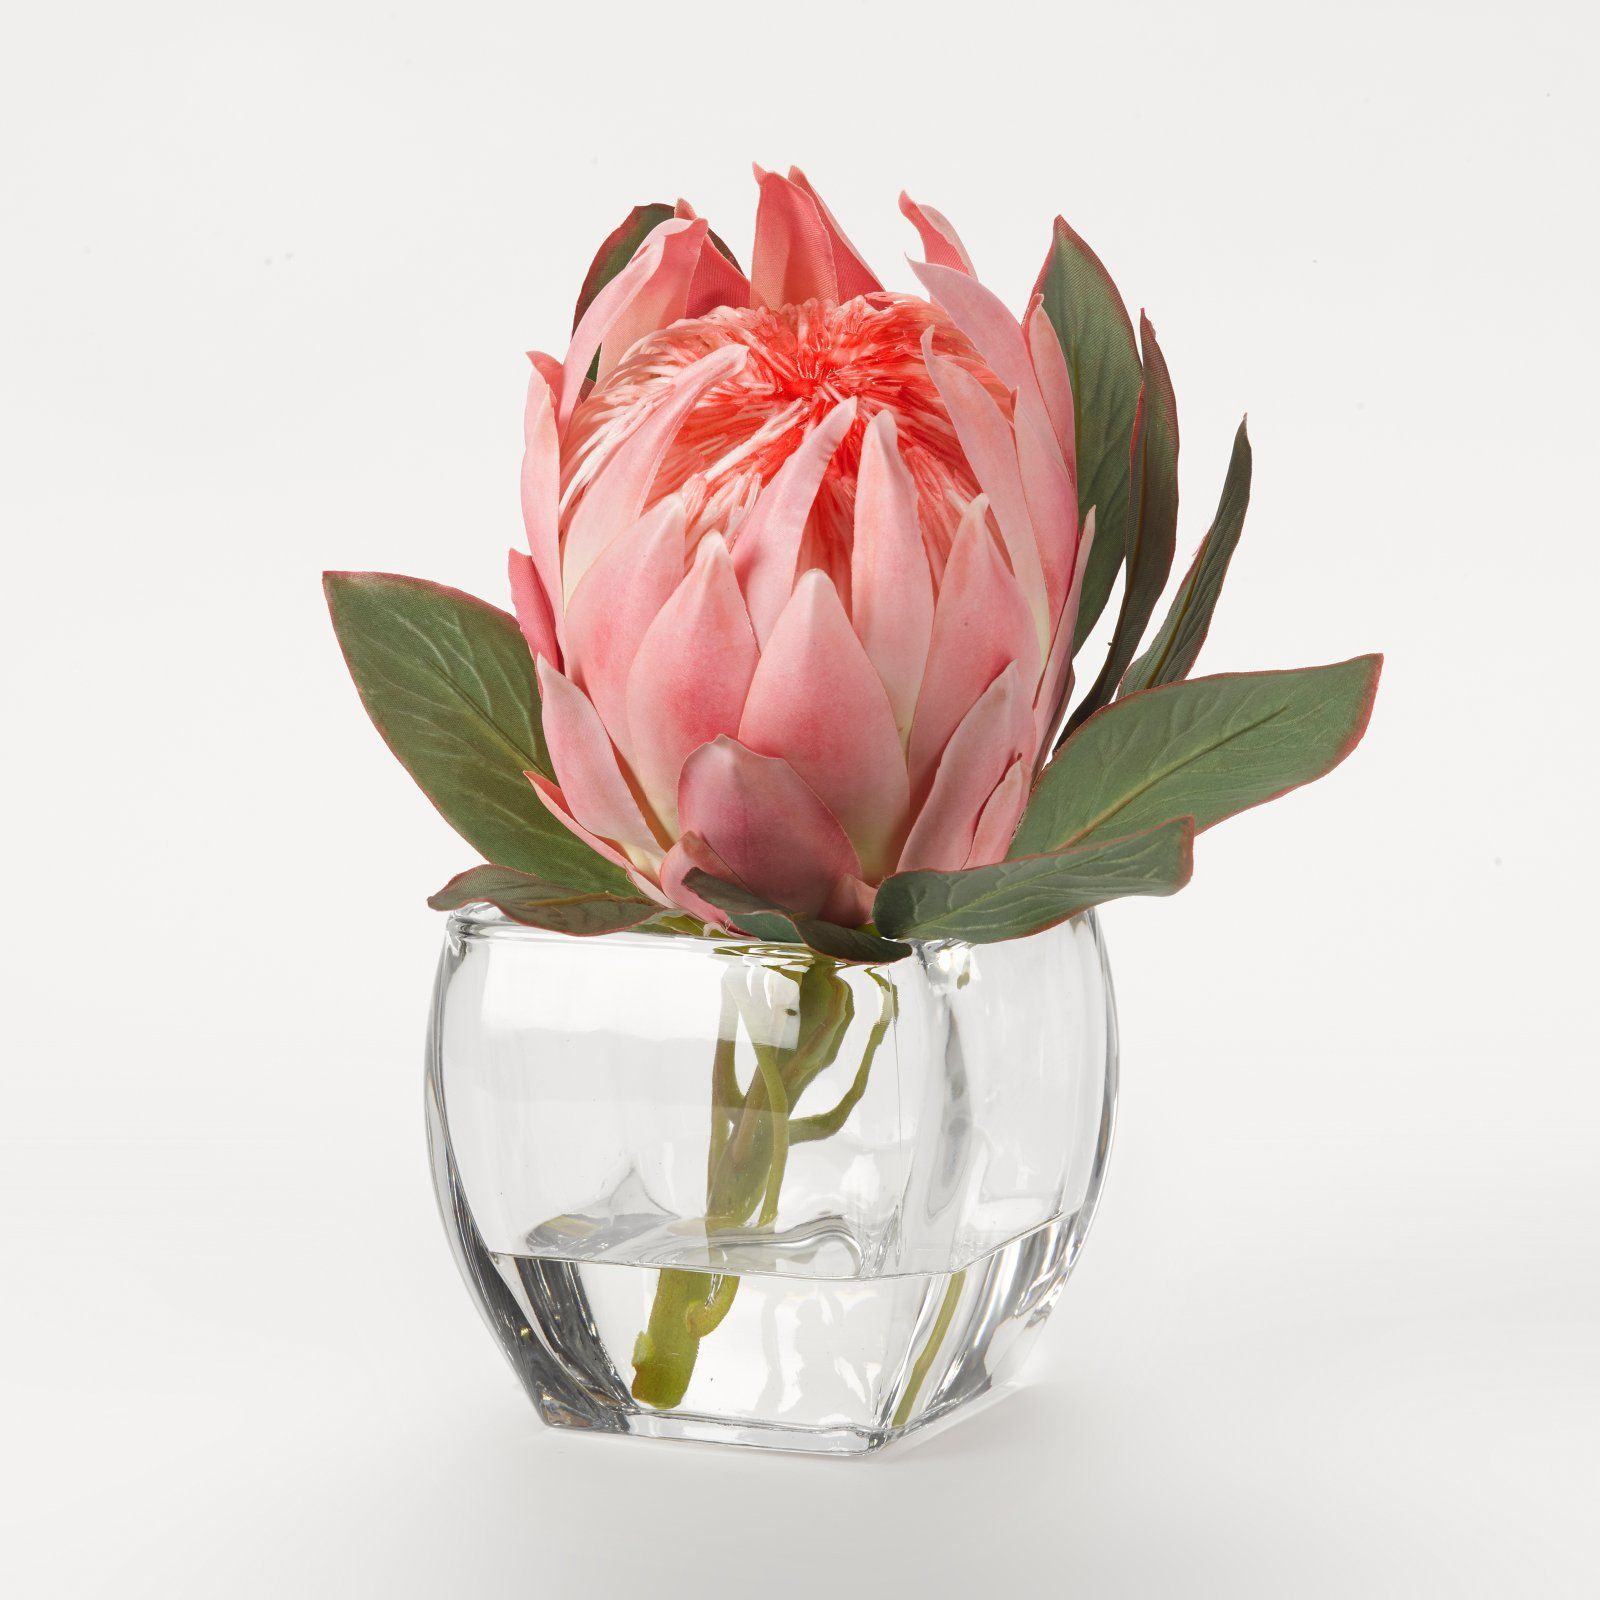 D And W Silks Artificial Queen Protea In Glass Cube Pink Protea Flower Glass Cube Rose Floral Arrangements